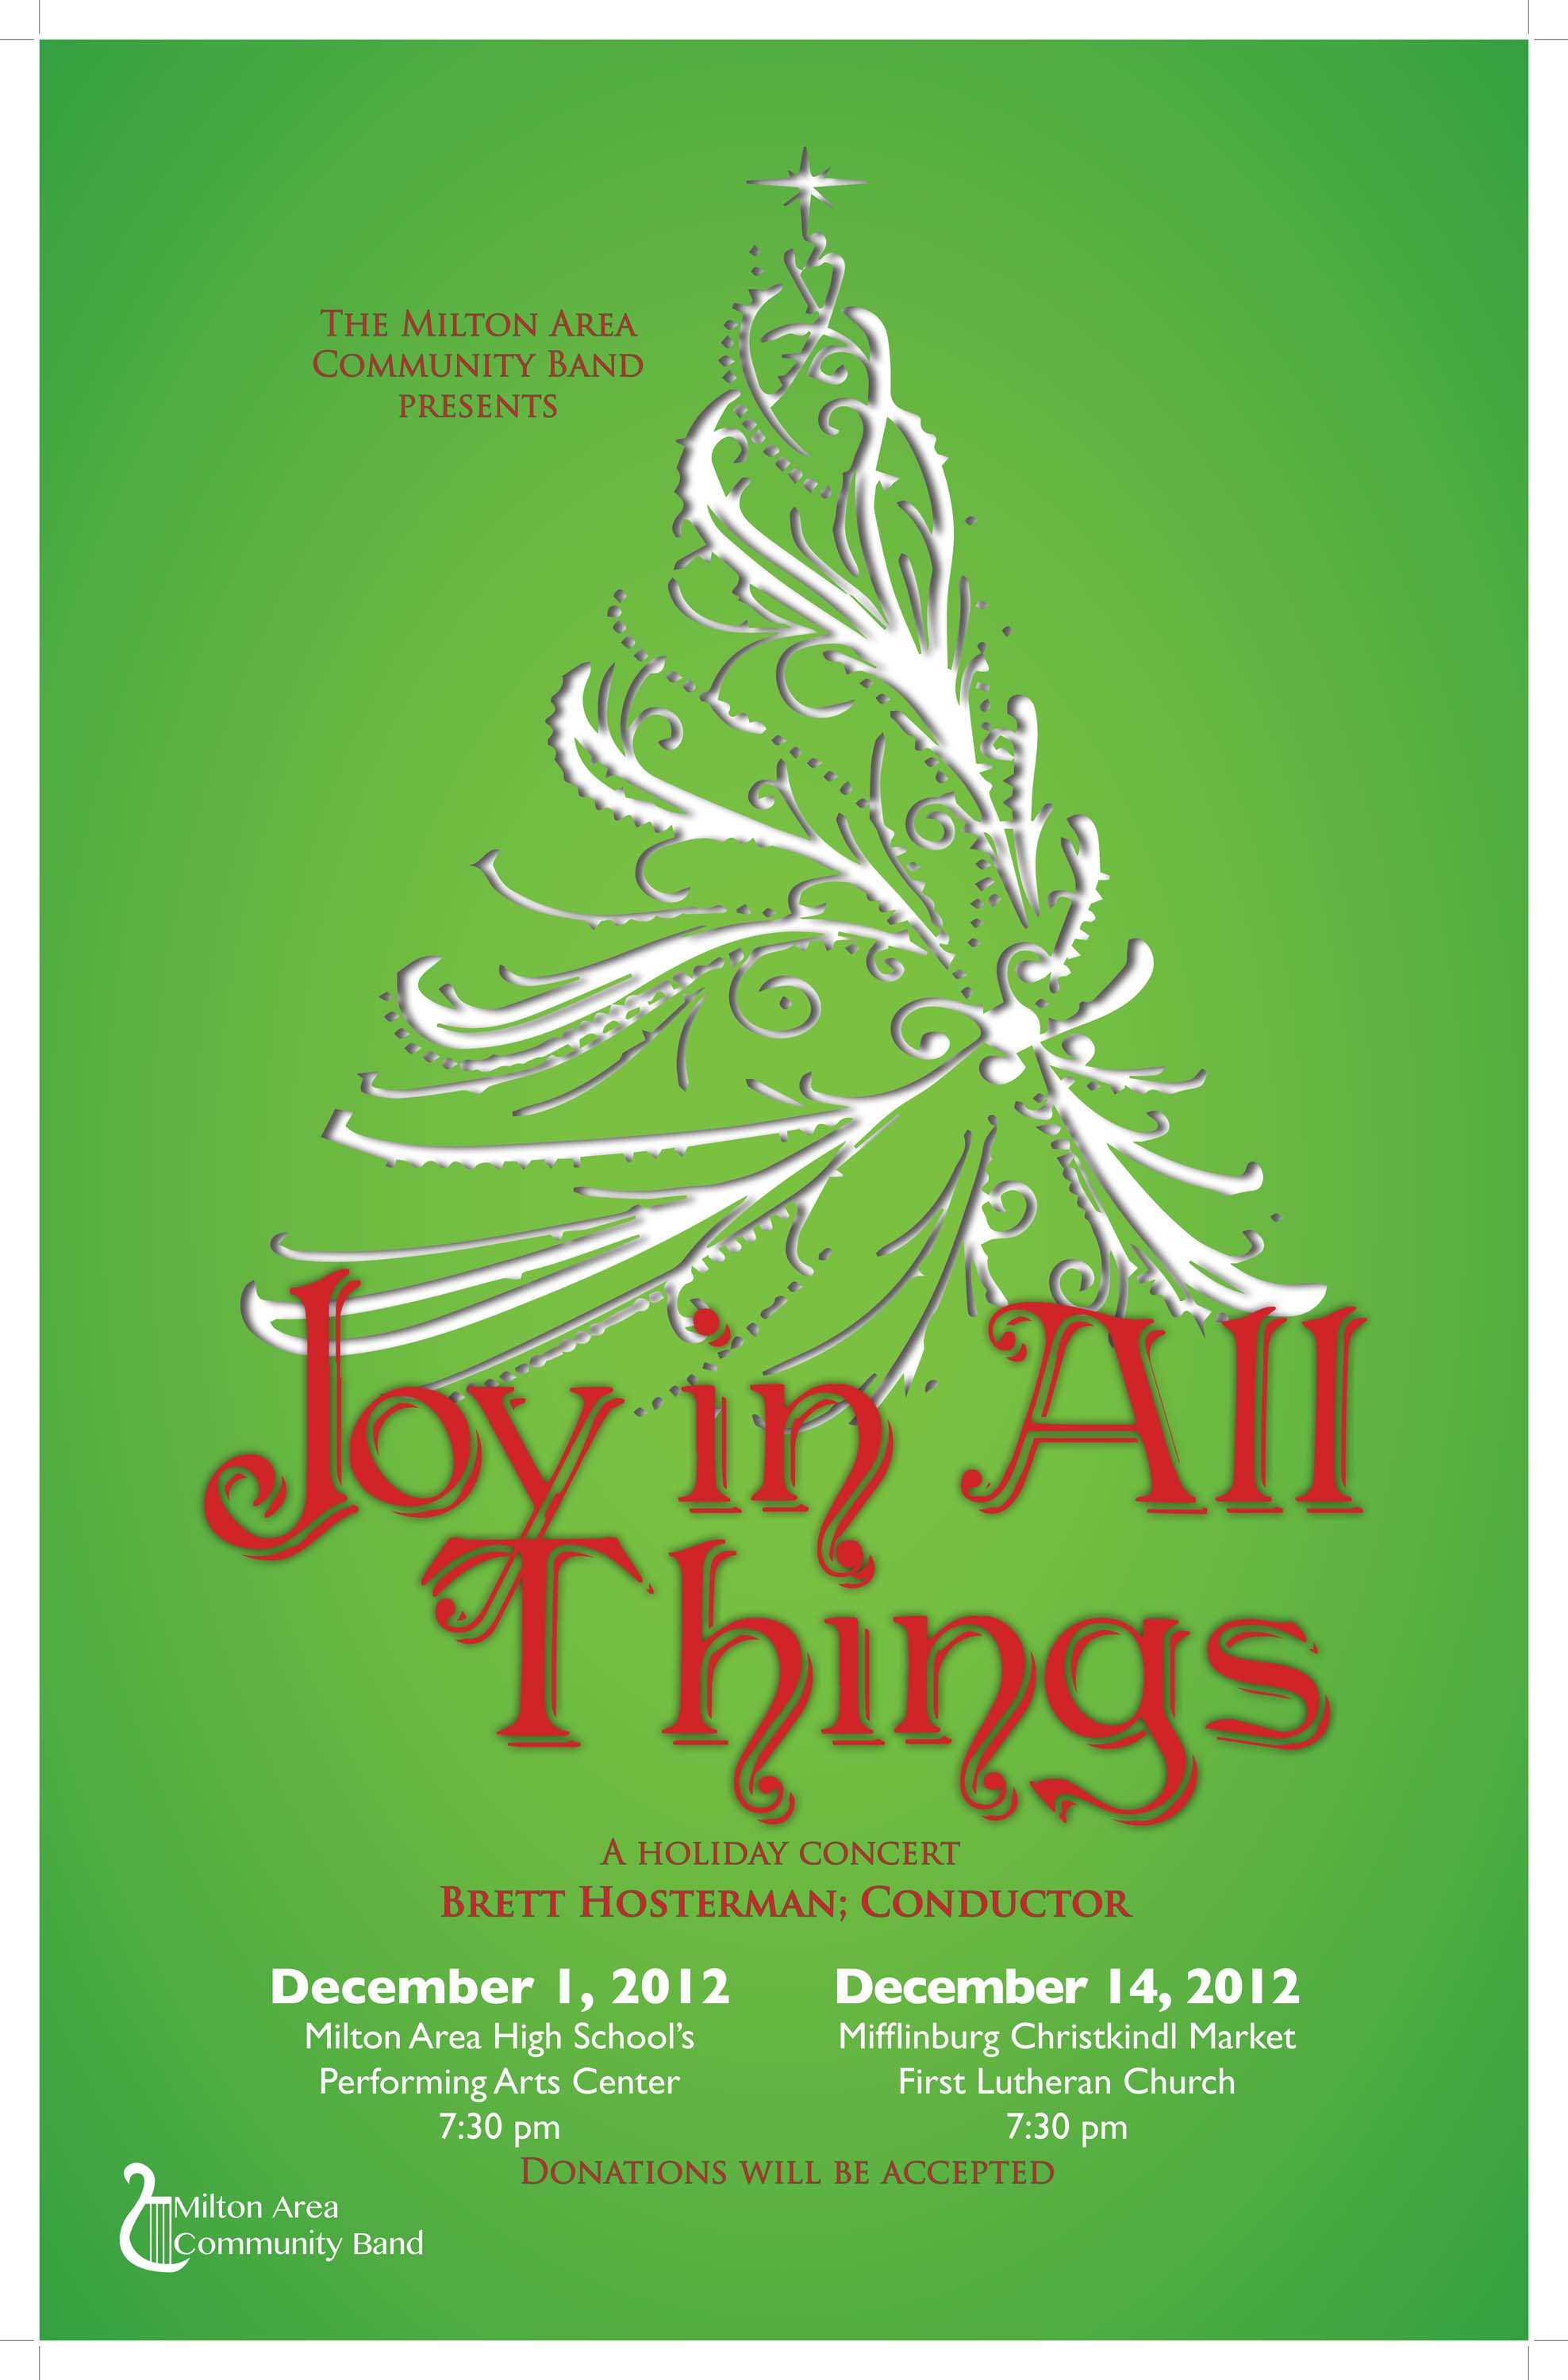 2012 Holiday Concert Poster